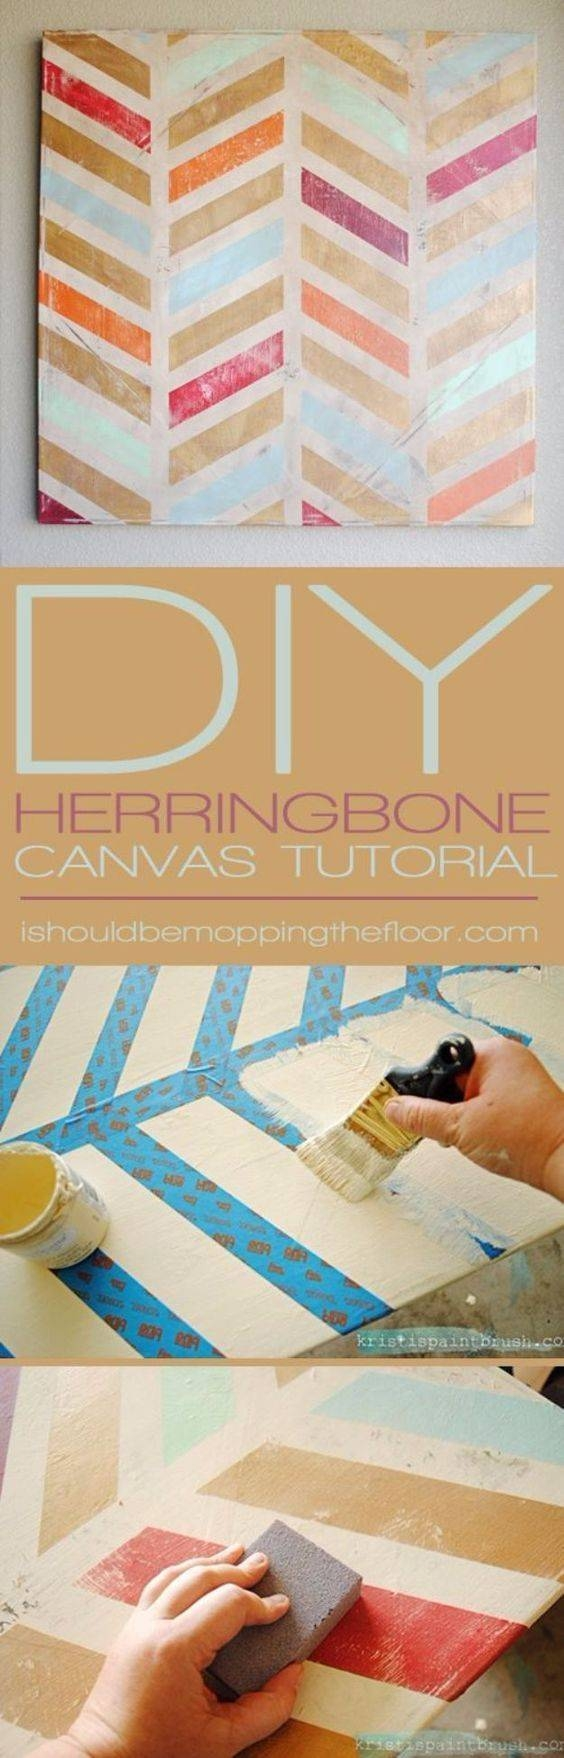 25+ Unique Diy Wall Ideas On Pinterest | Diy Art Projects, Diy Regarding Latest Diy Pinterest Canvas Art (View 12 of 25)